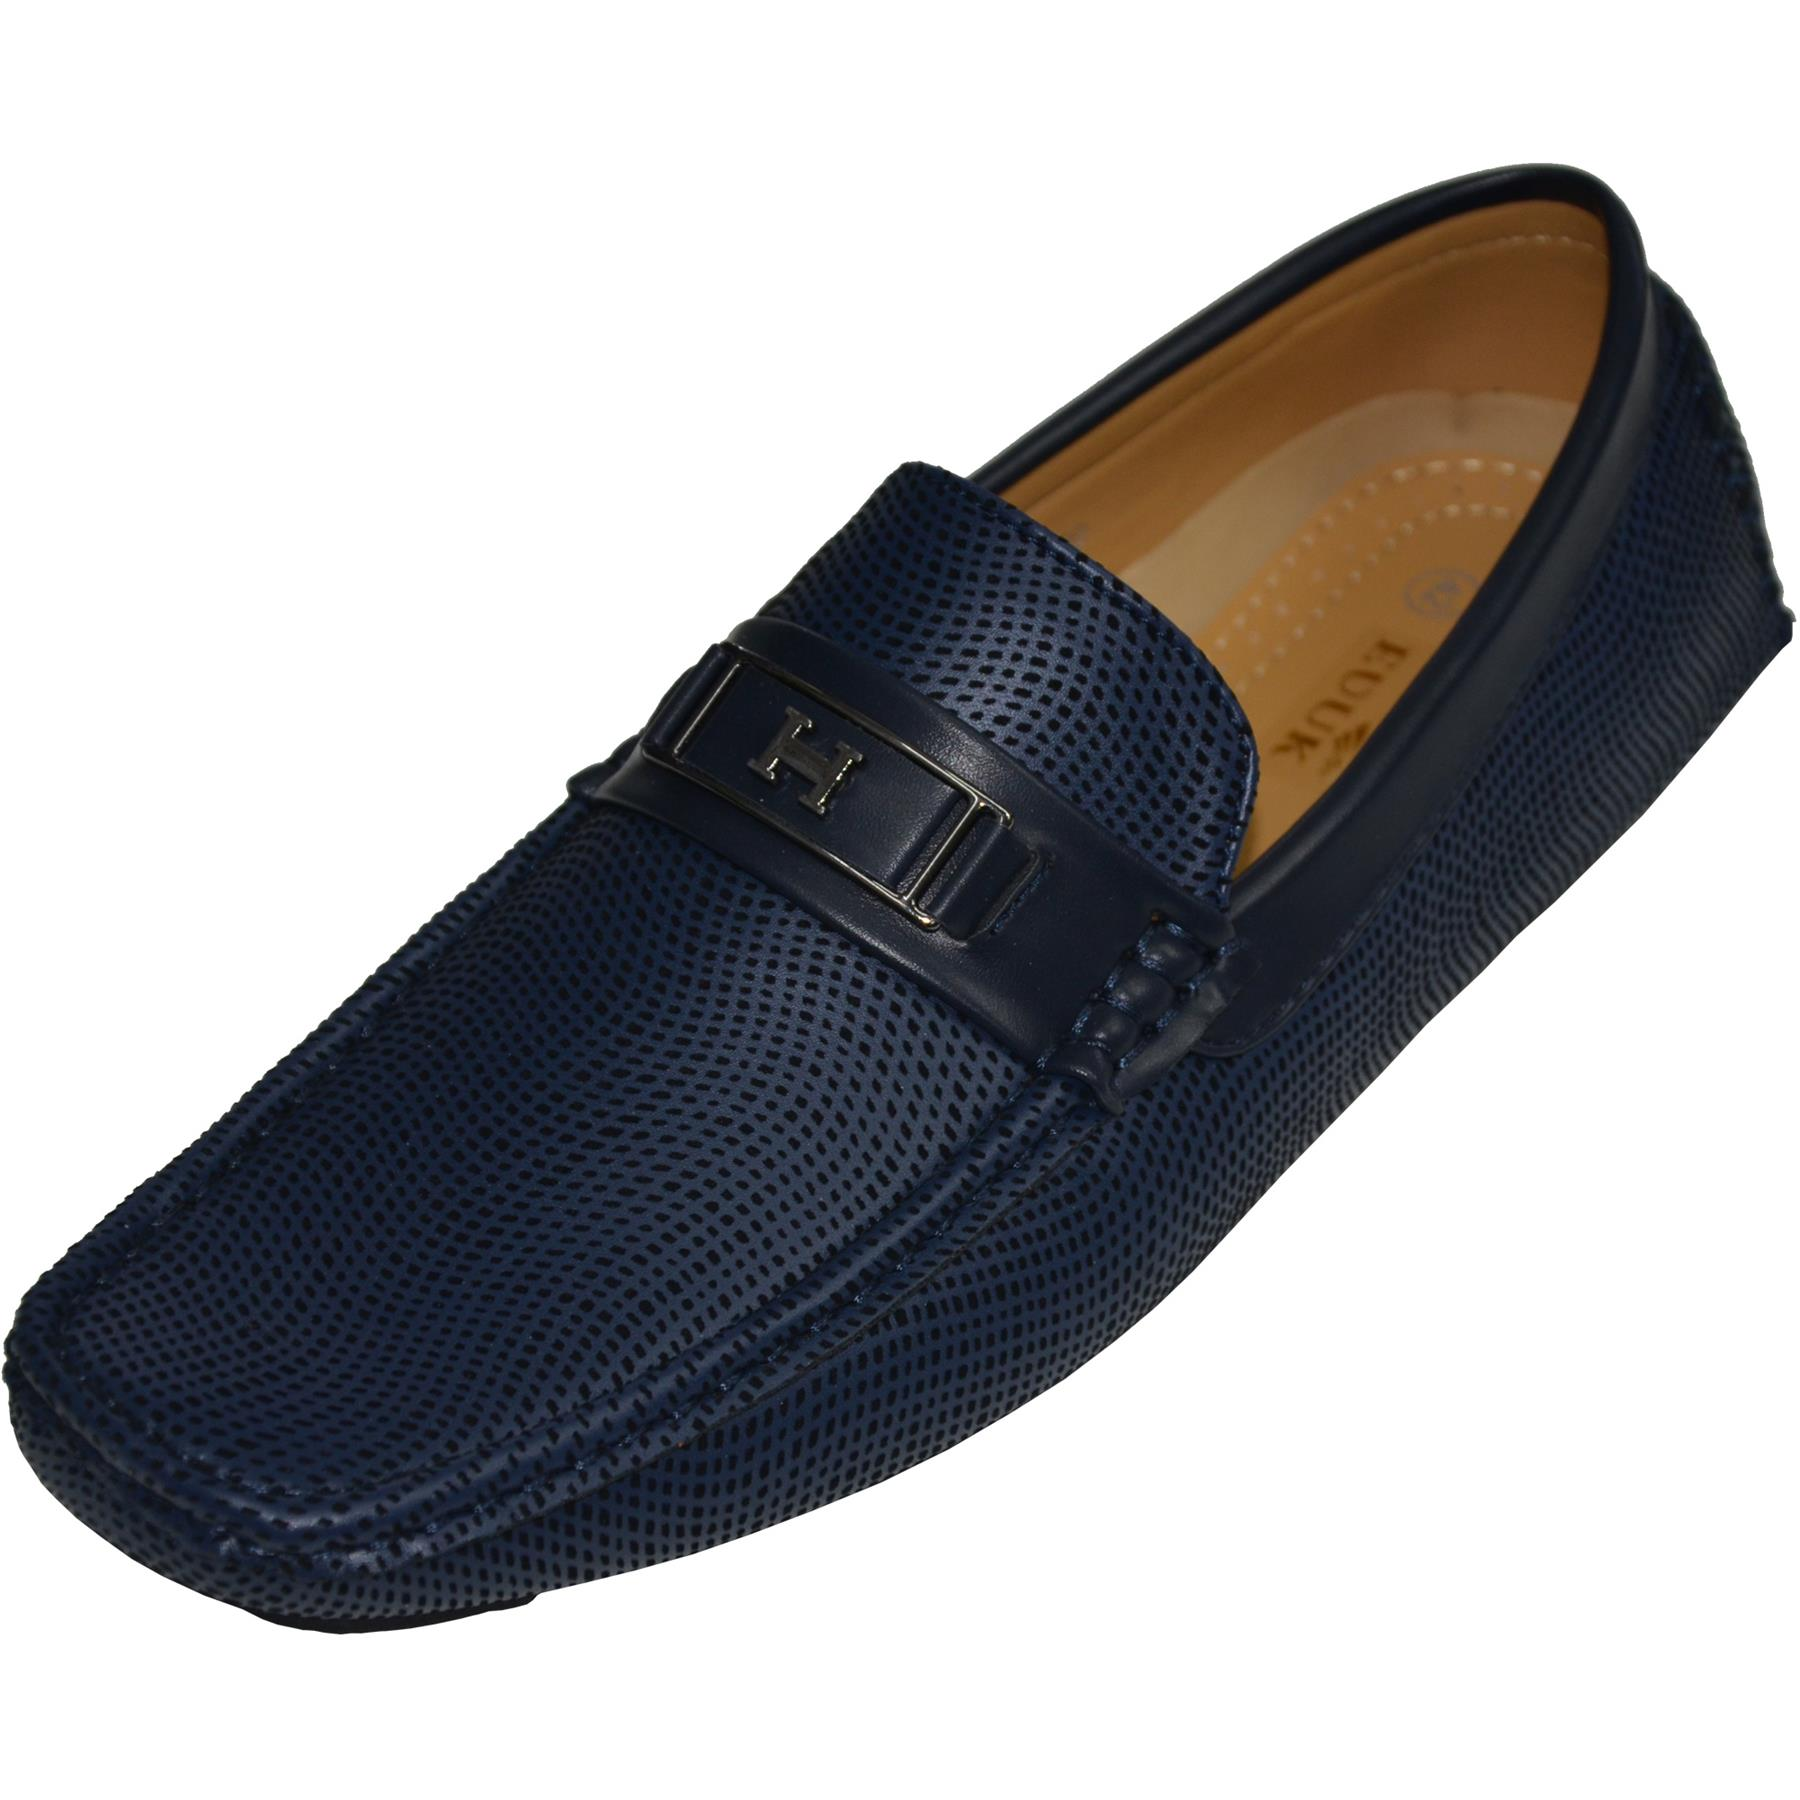 Mens-Slip-Ons-Shoes-Boat-Deck-Driving-Smart-Buckle-Moccasins-Suede-Look-Loafers thumbnail 10